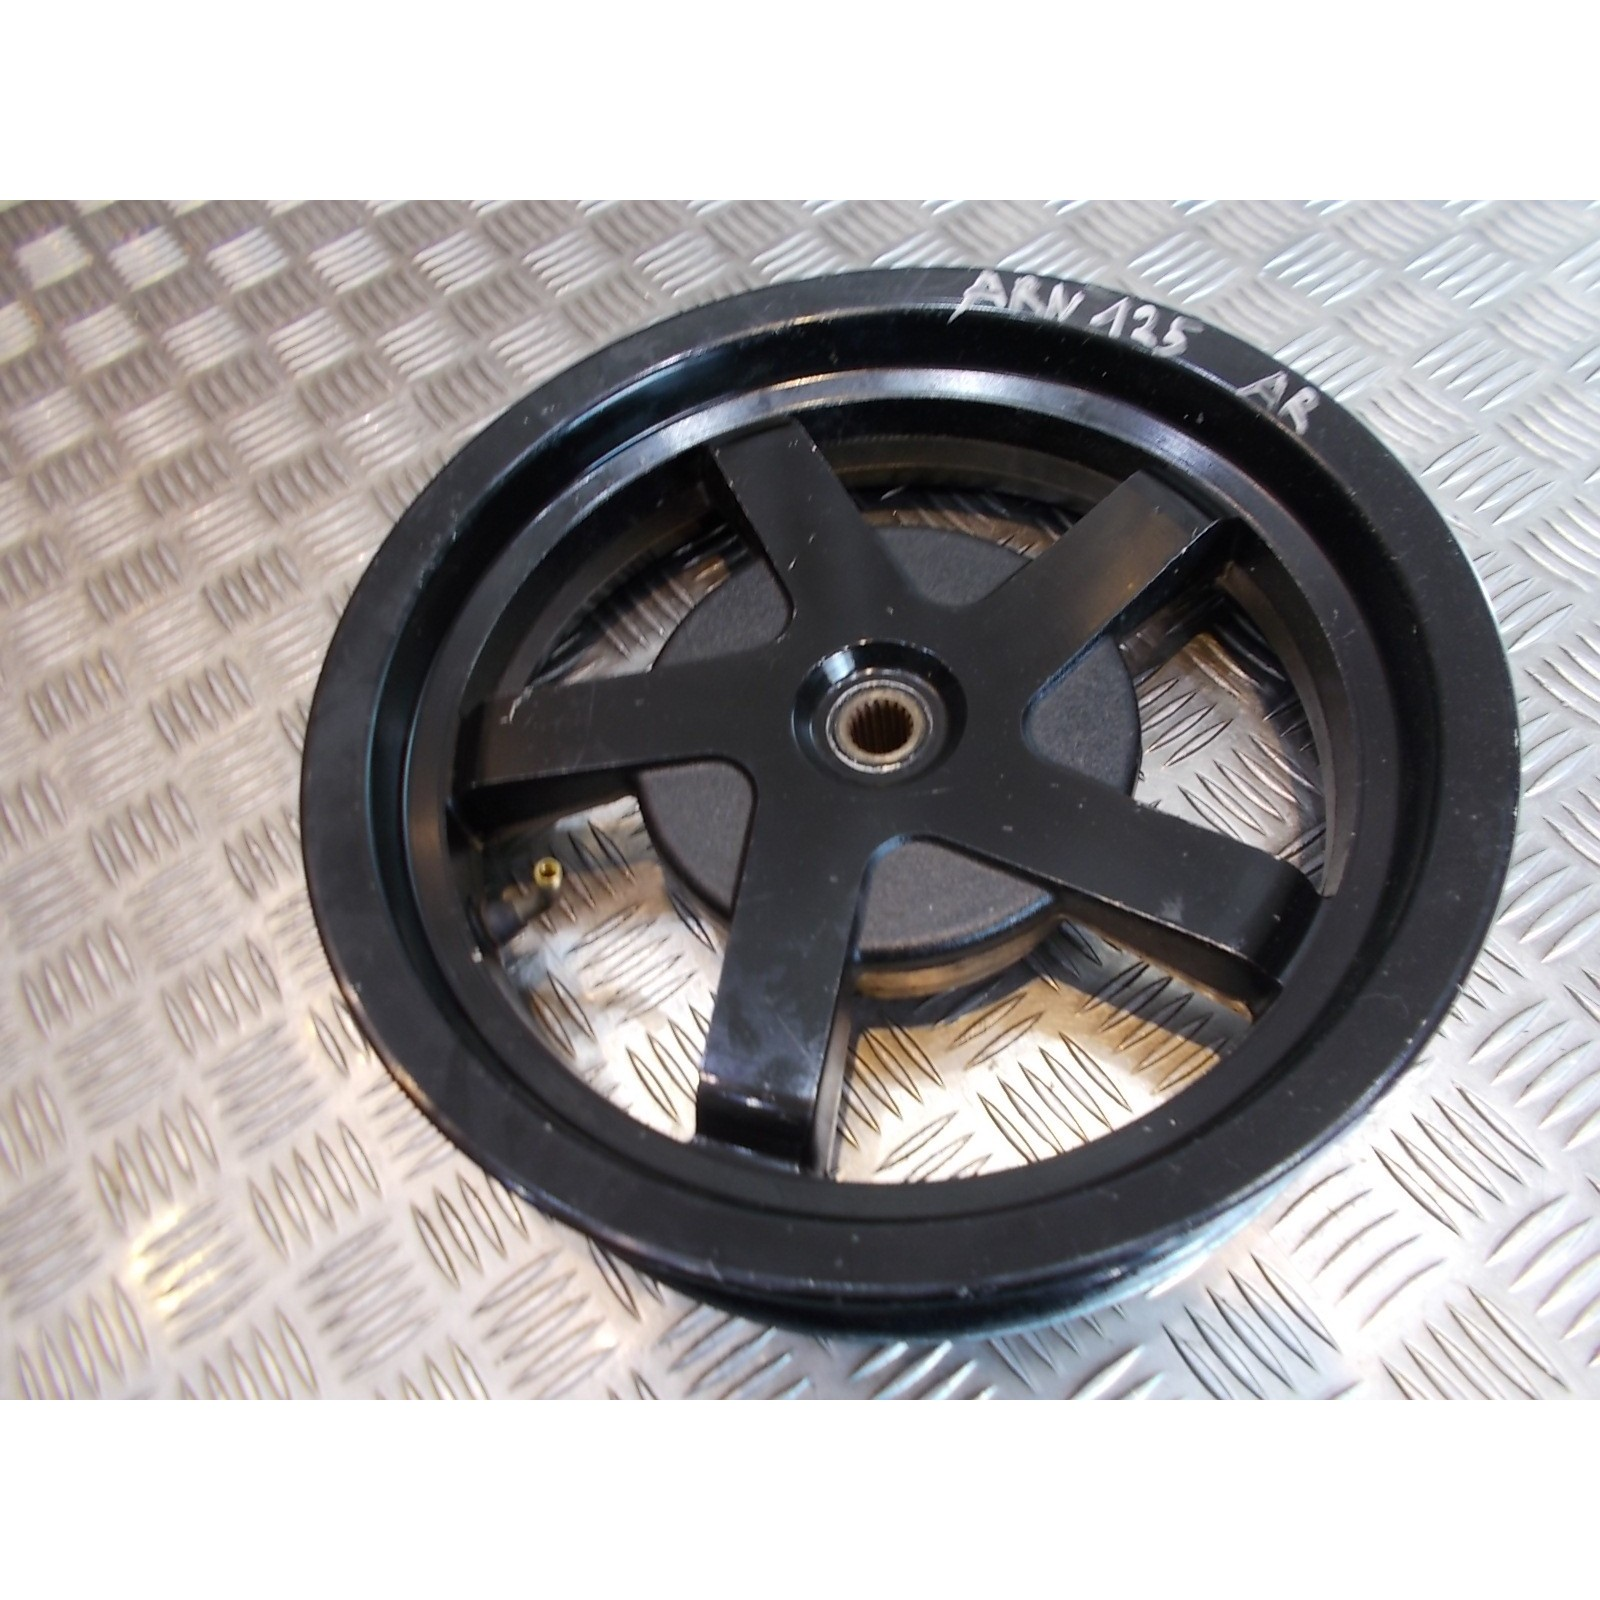 jante roue arriere scooter chinois keeway 125 arn